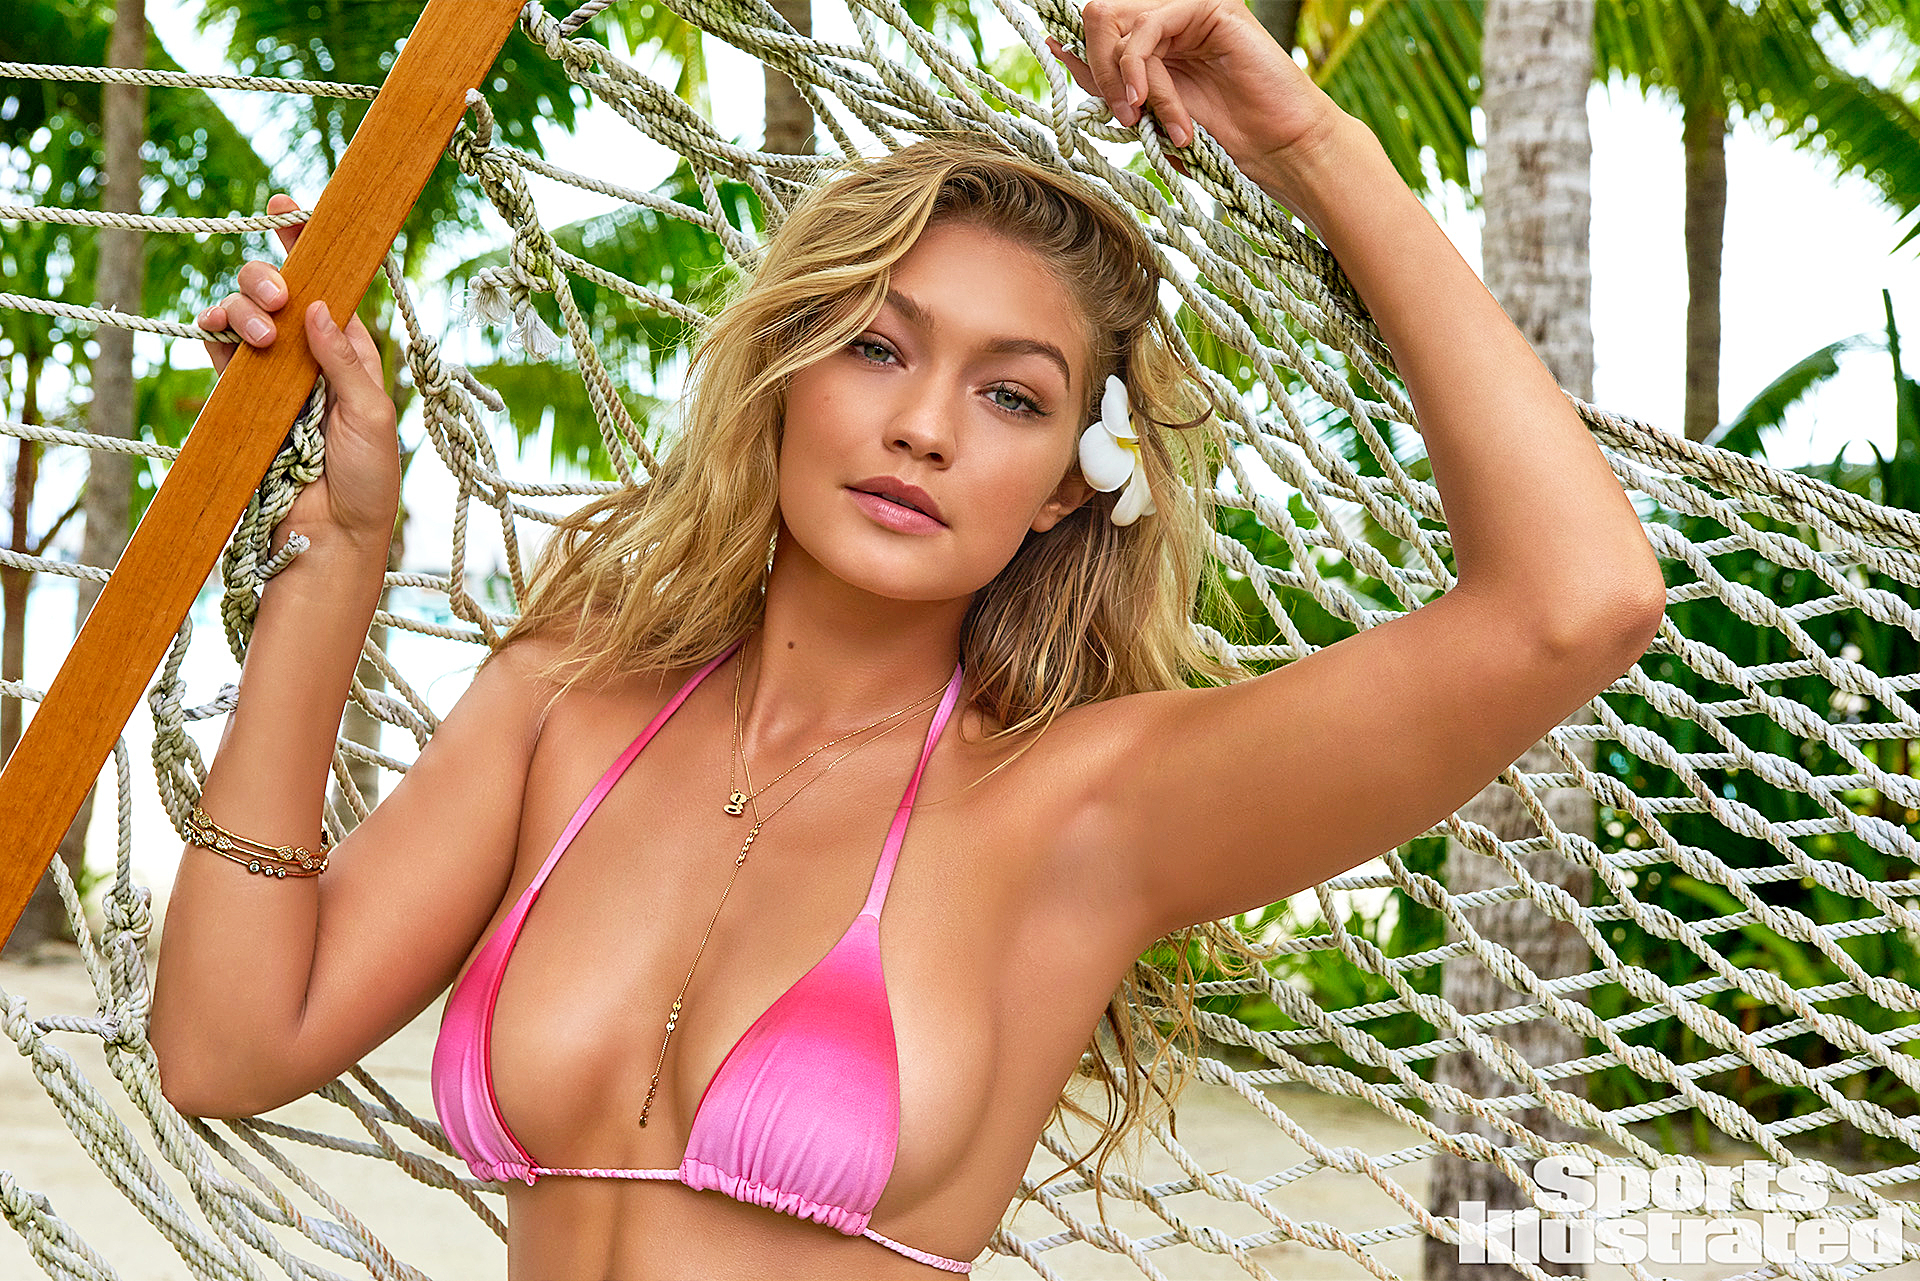 Gigi Hadid in the Sports Illustrated 2016 Swimsuit Issue